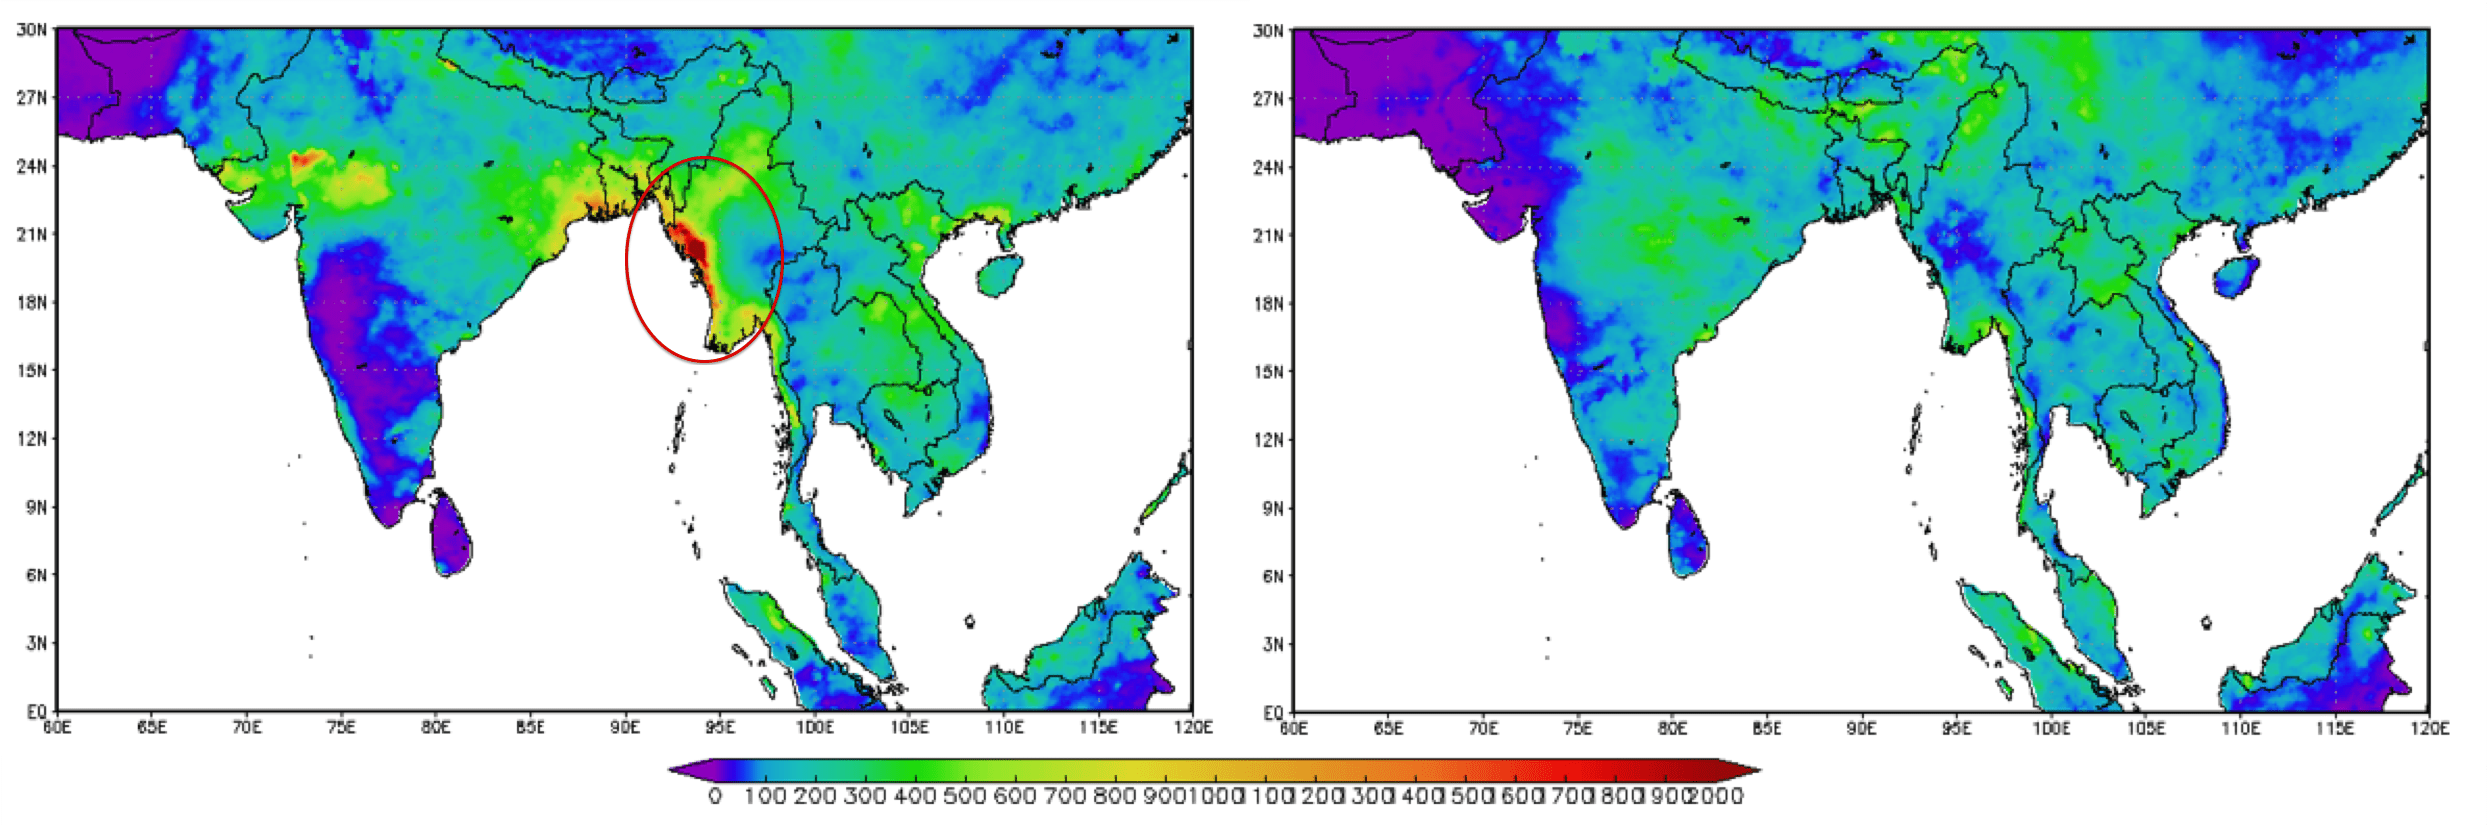 Fig. A: Rainfall Estimates July Fig. B: Rainfall Estimates